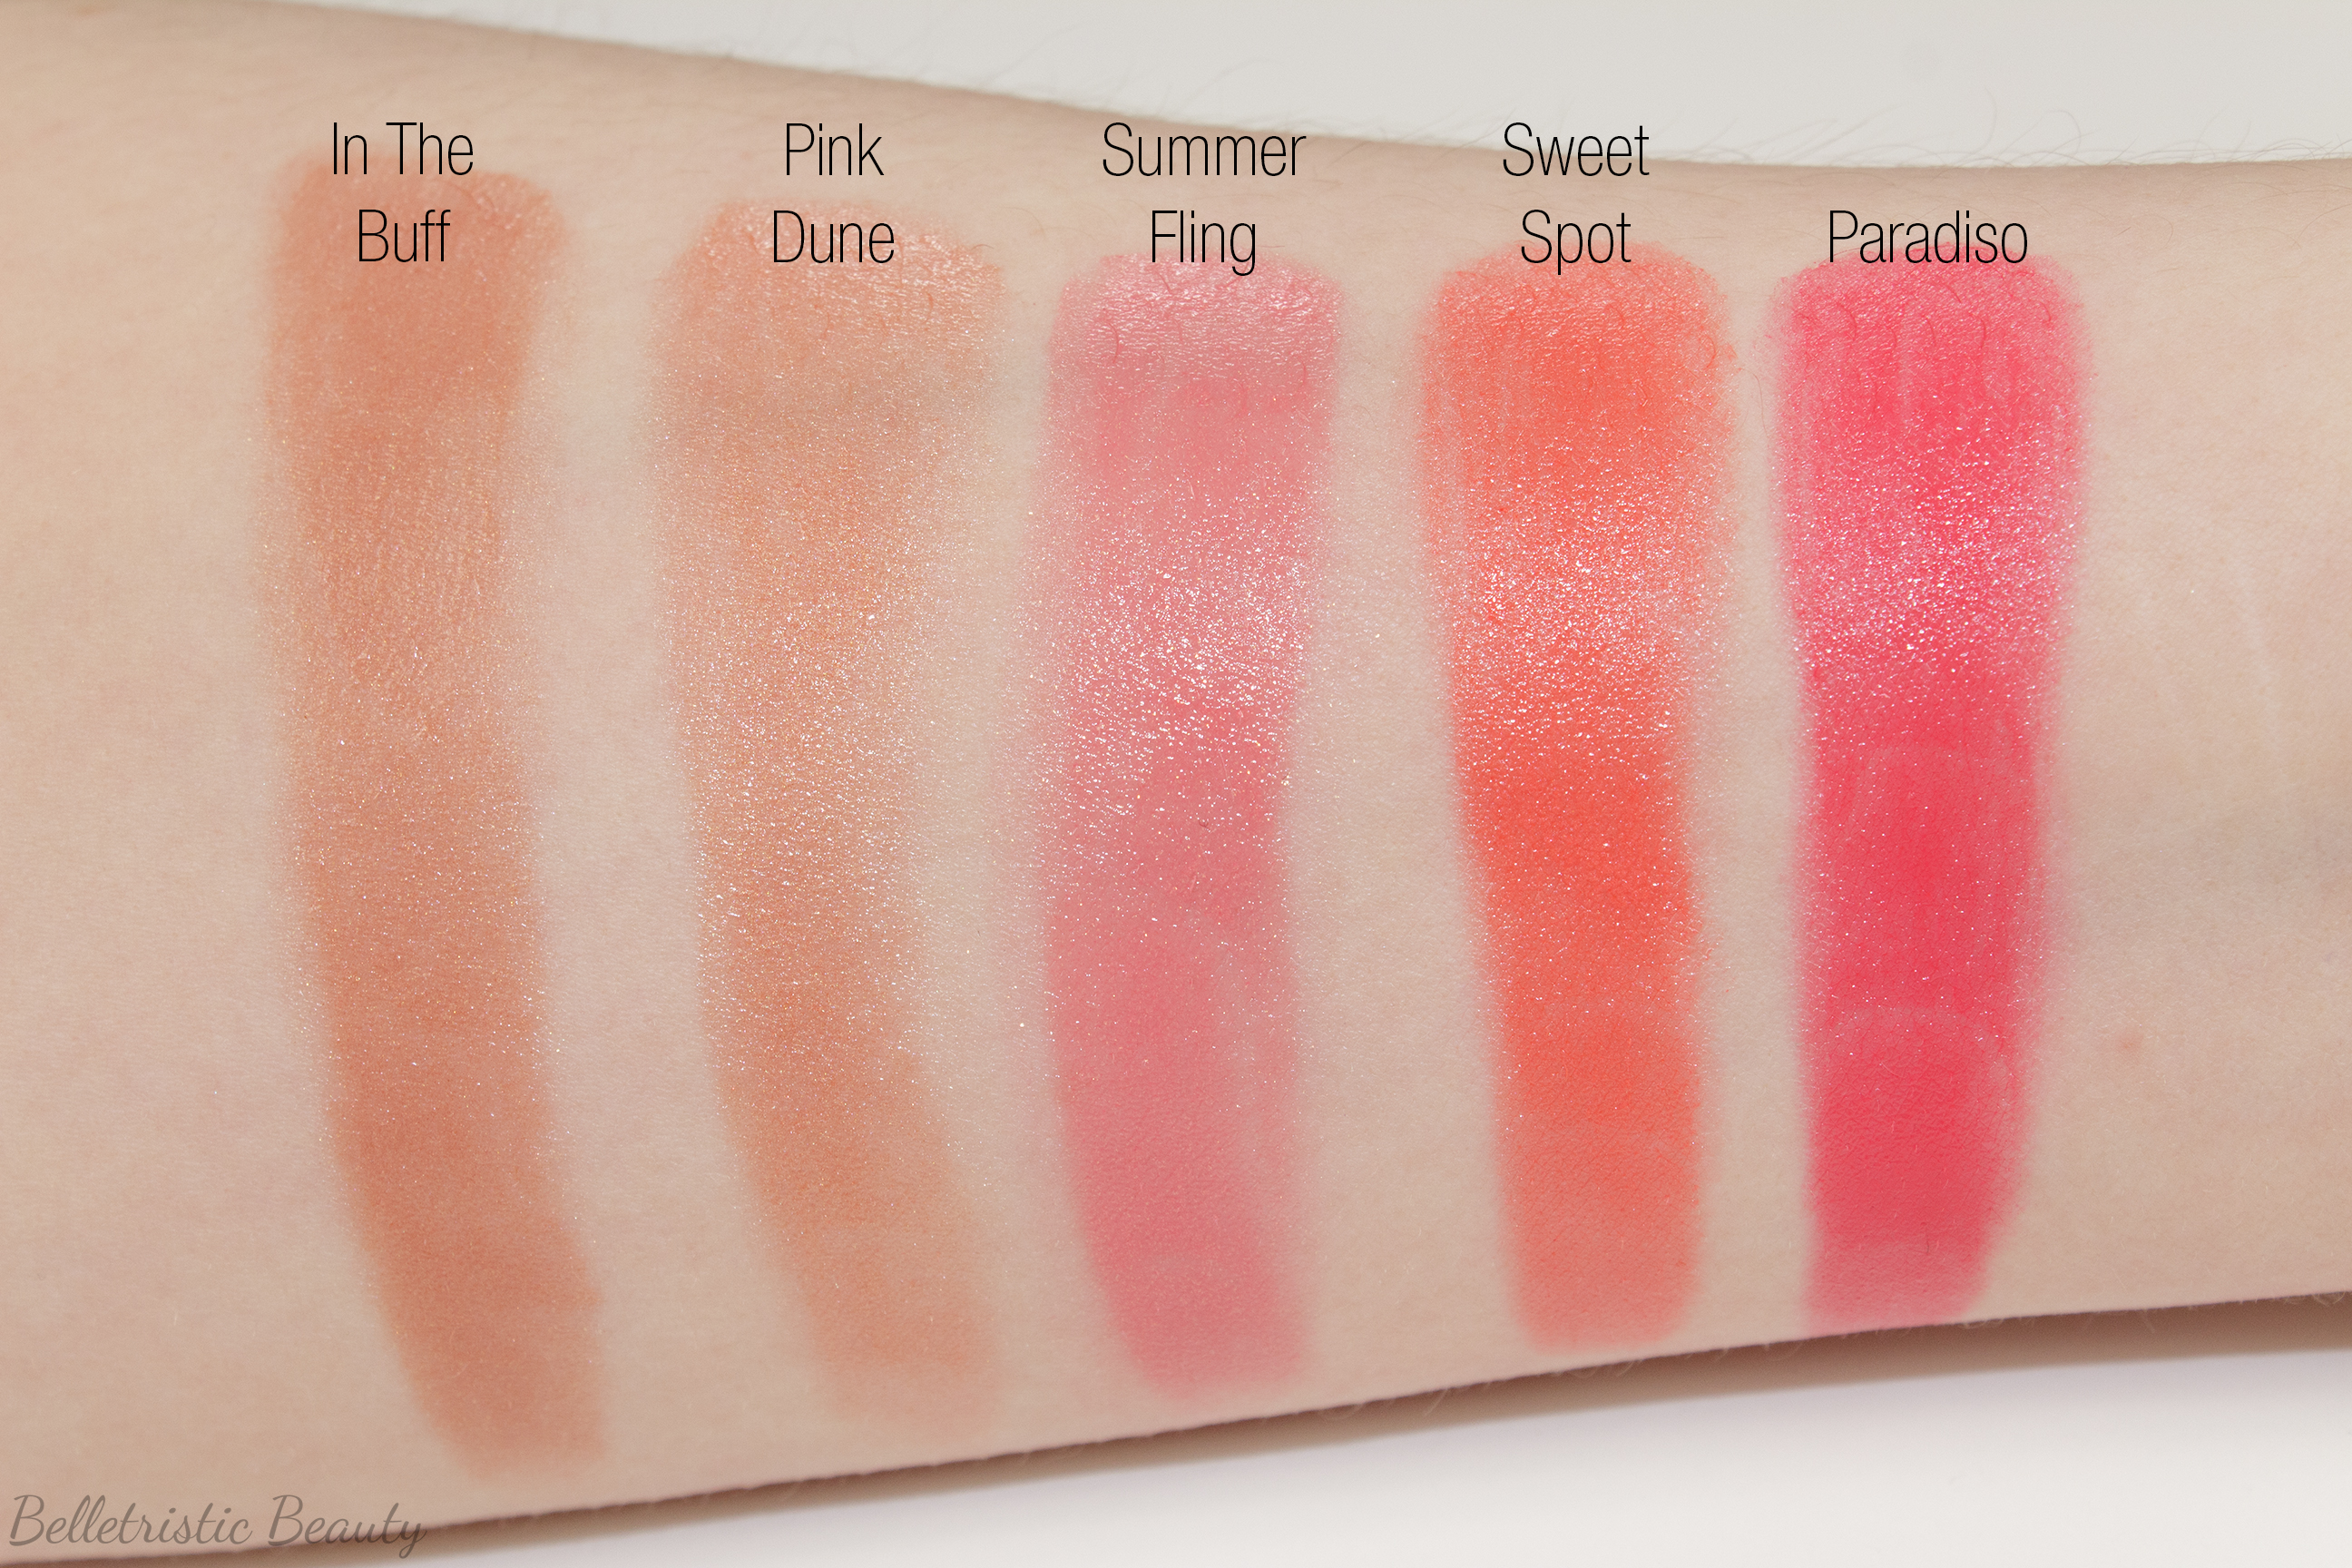 home tom ford lipstick swatches. Cars Review. Best American Auto & Cars Review